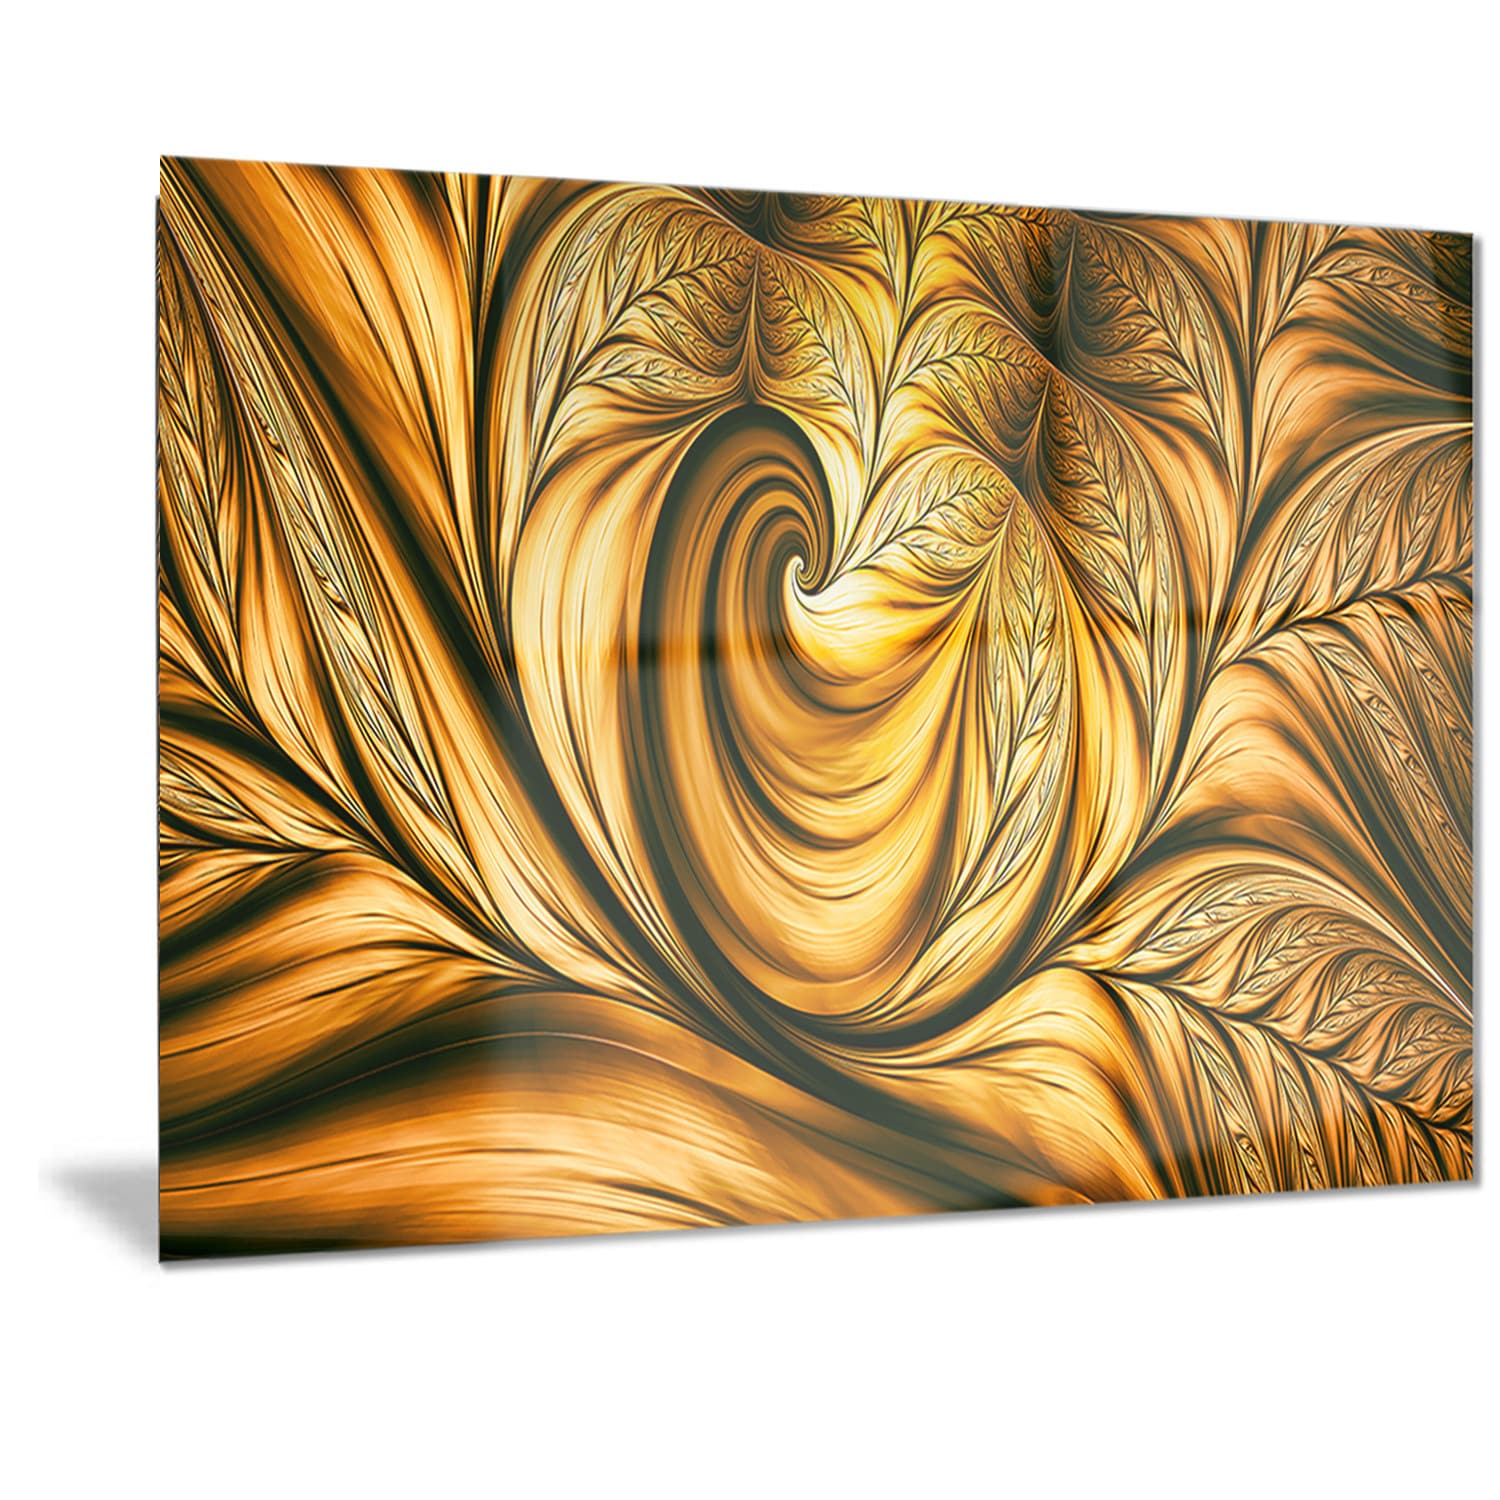 Transitional Metal Art For Less | Overstock.com